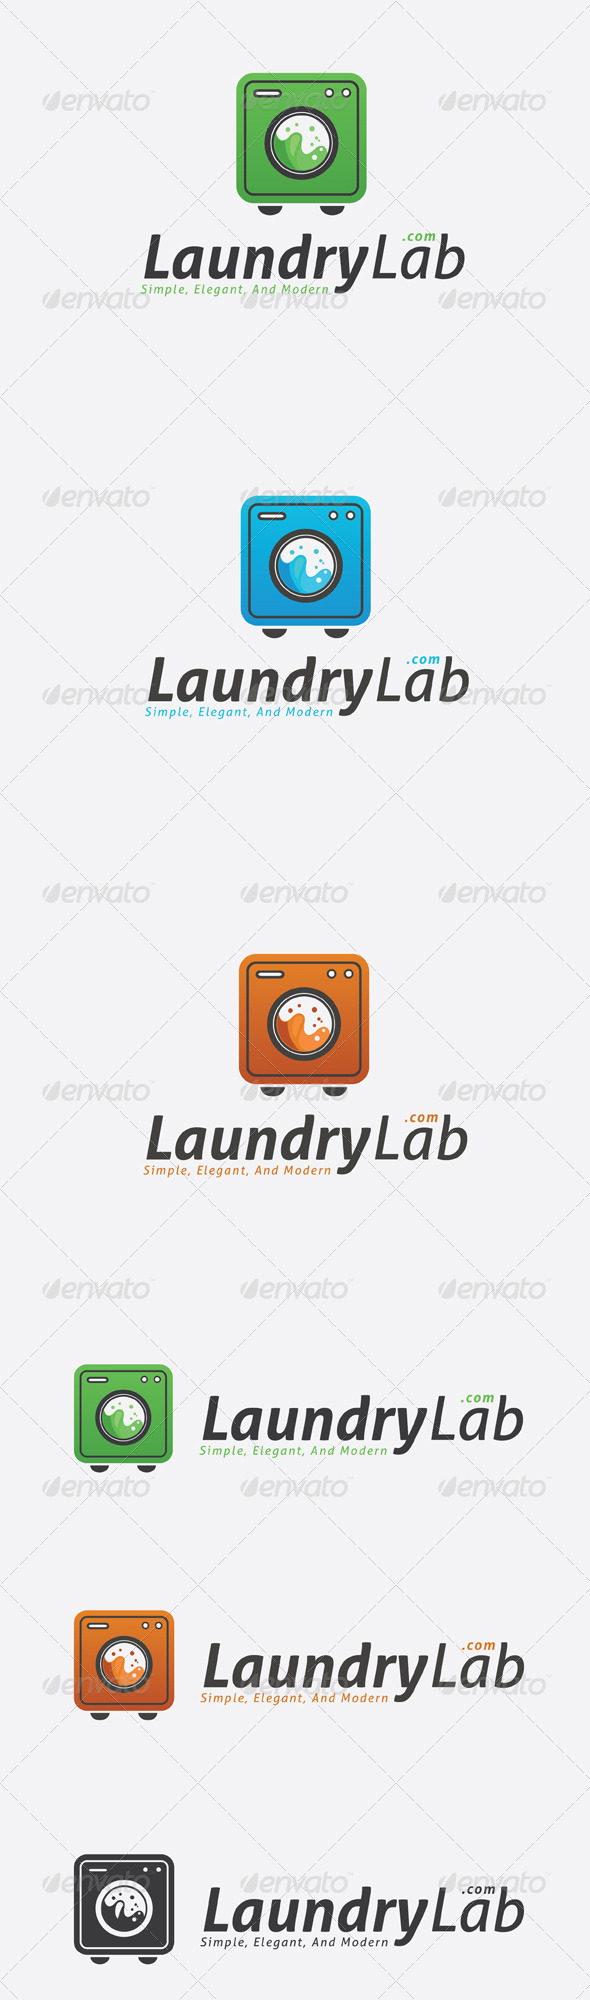 GraphicRiver Laundry Lab logo 6730970